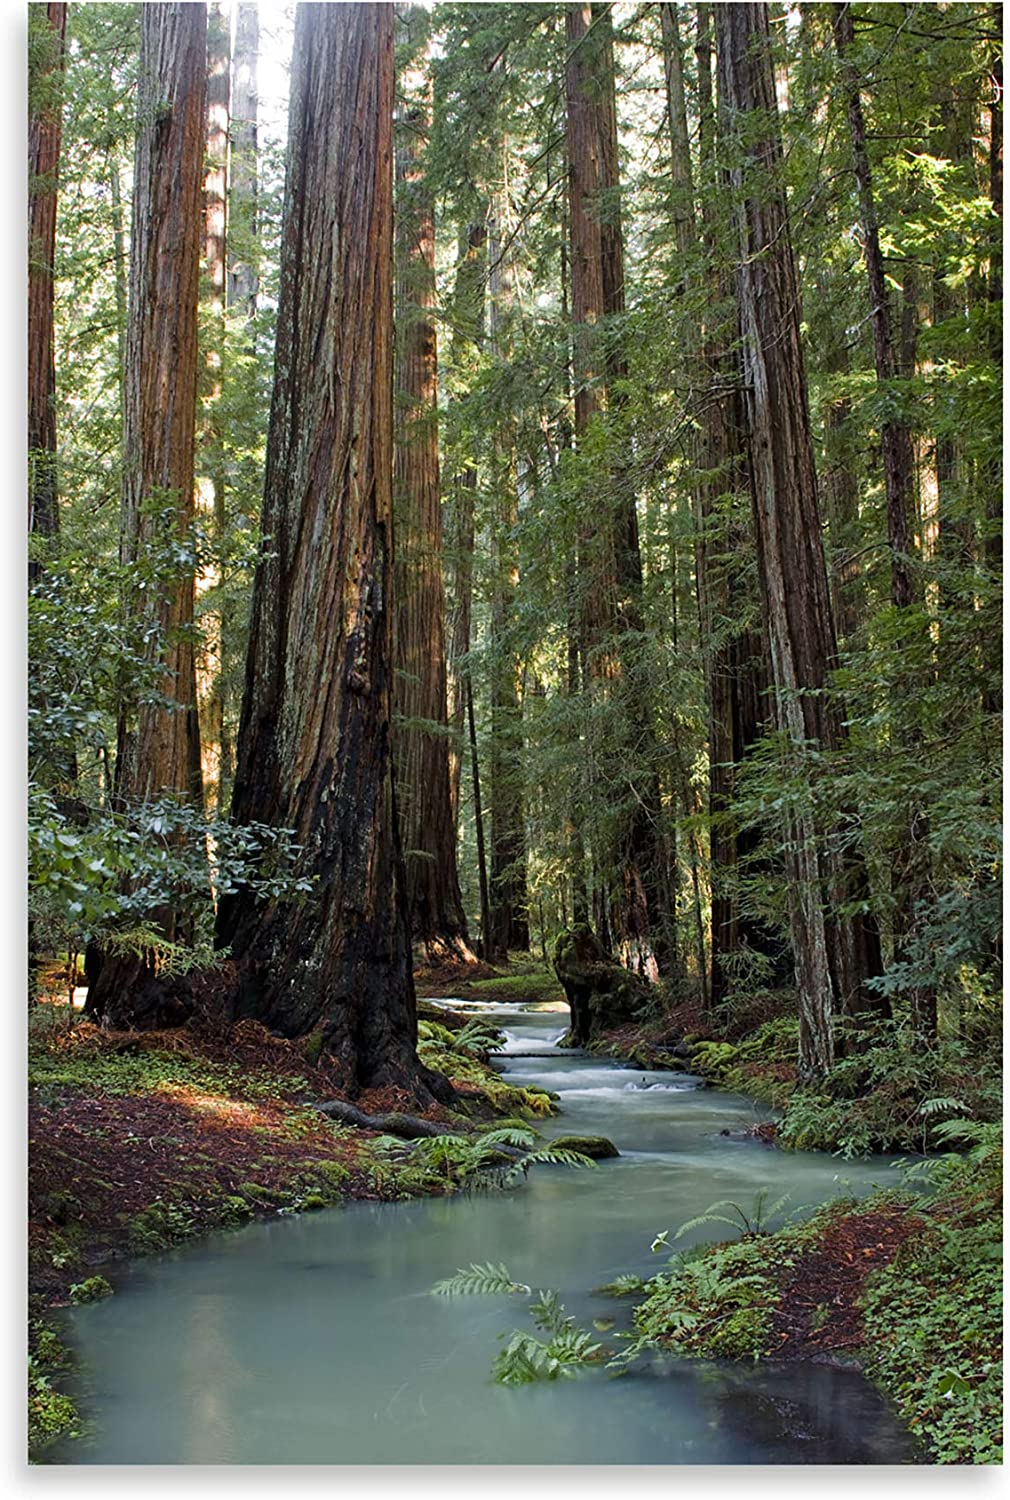 Free shipping anywhere in the nation Gango Home Décor Redwood Forest by: Art Max 73% OFF Fine Photograph III